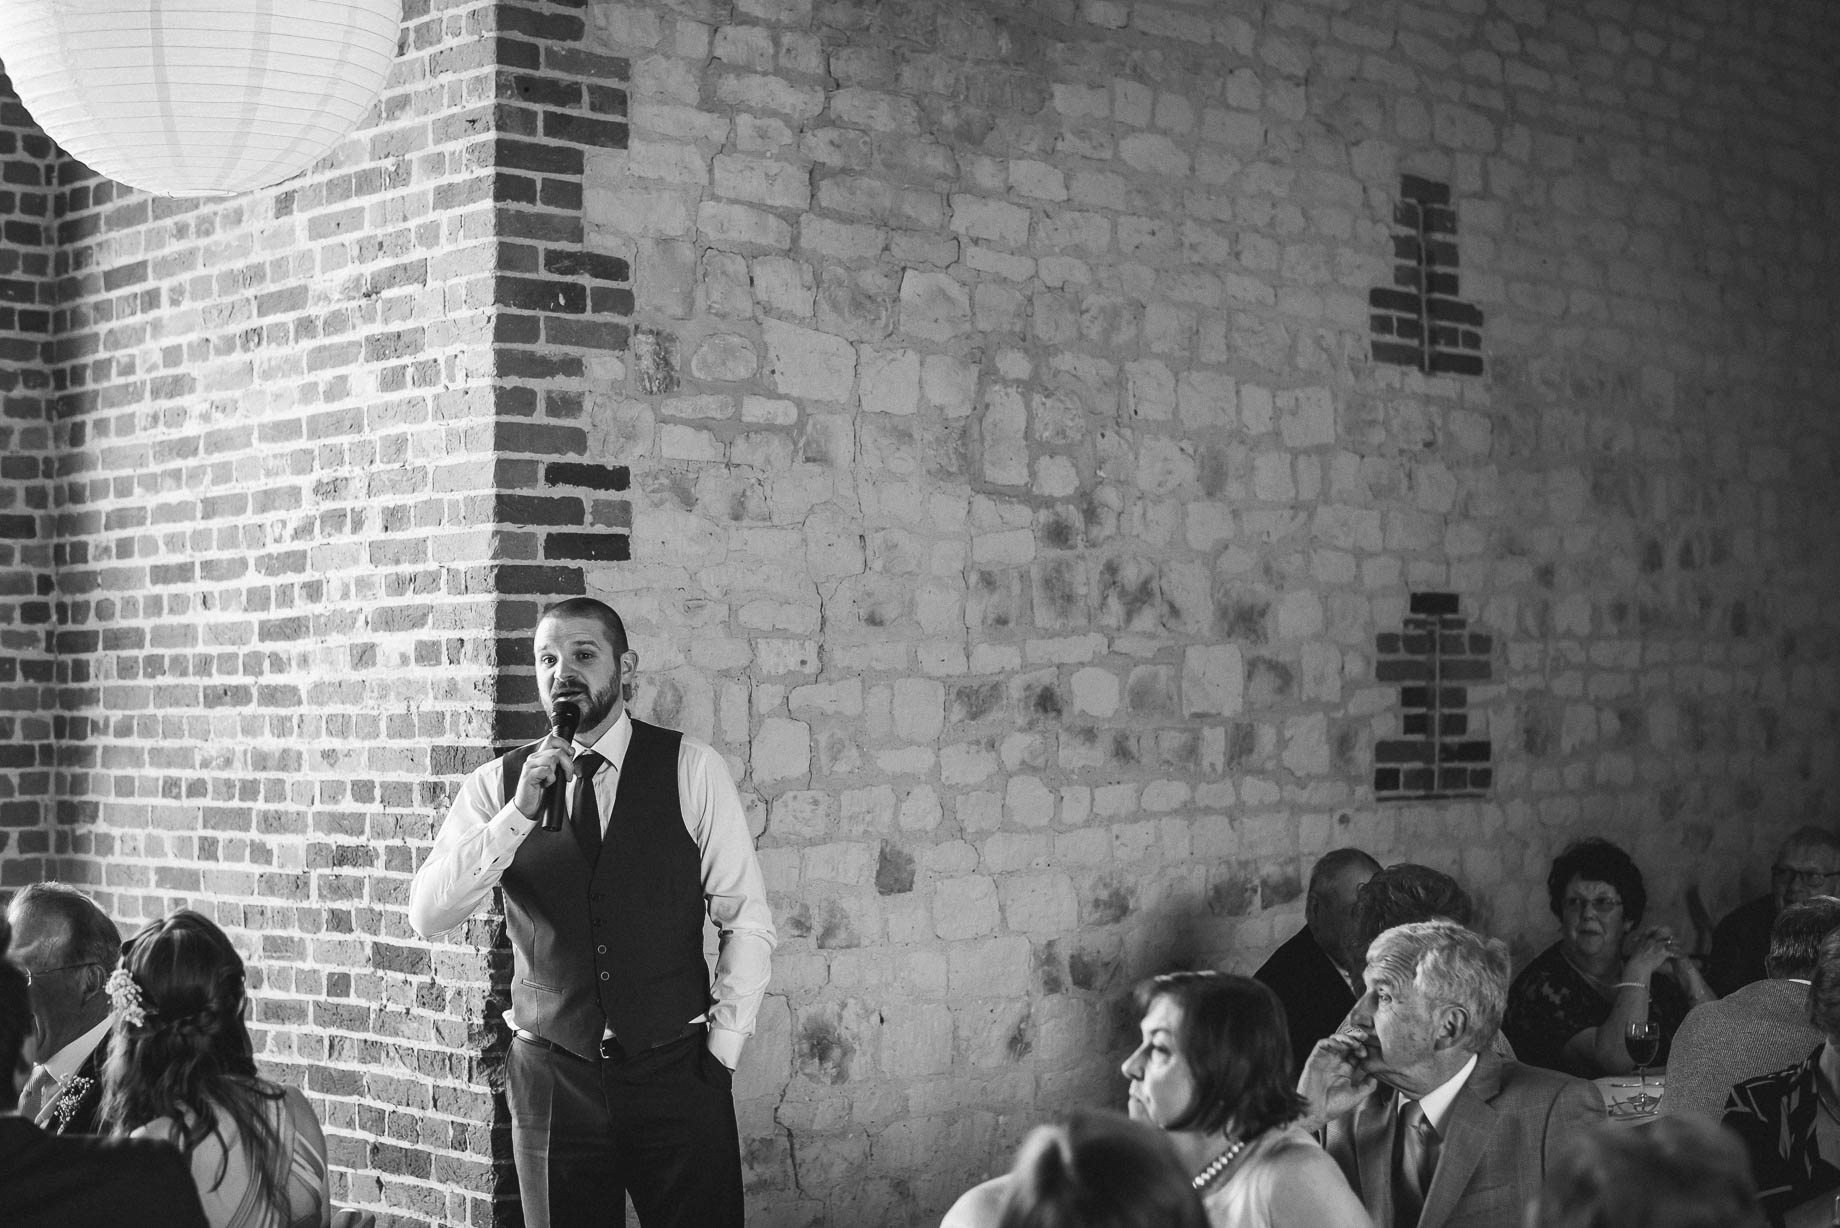 Bury Court Barn wedding photography by Guy Collier - Heather and Pat (116 of 170)